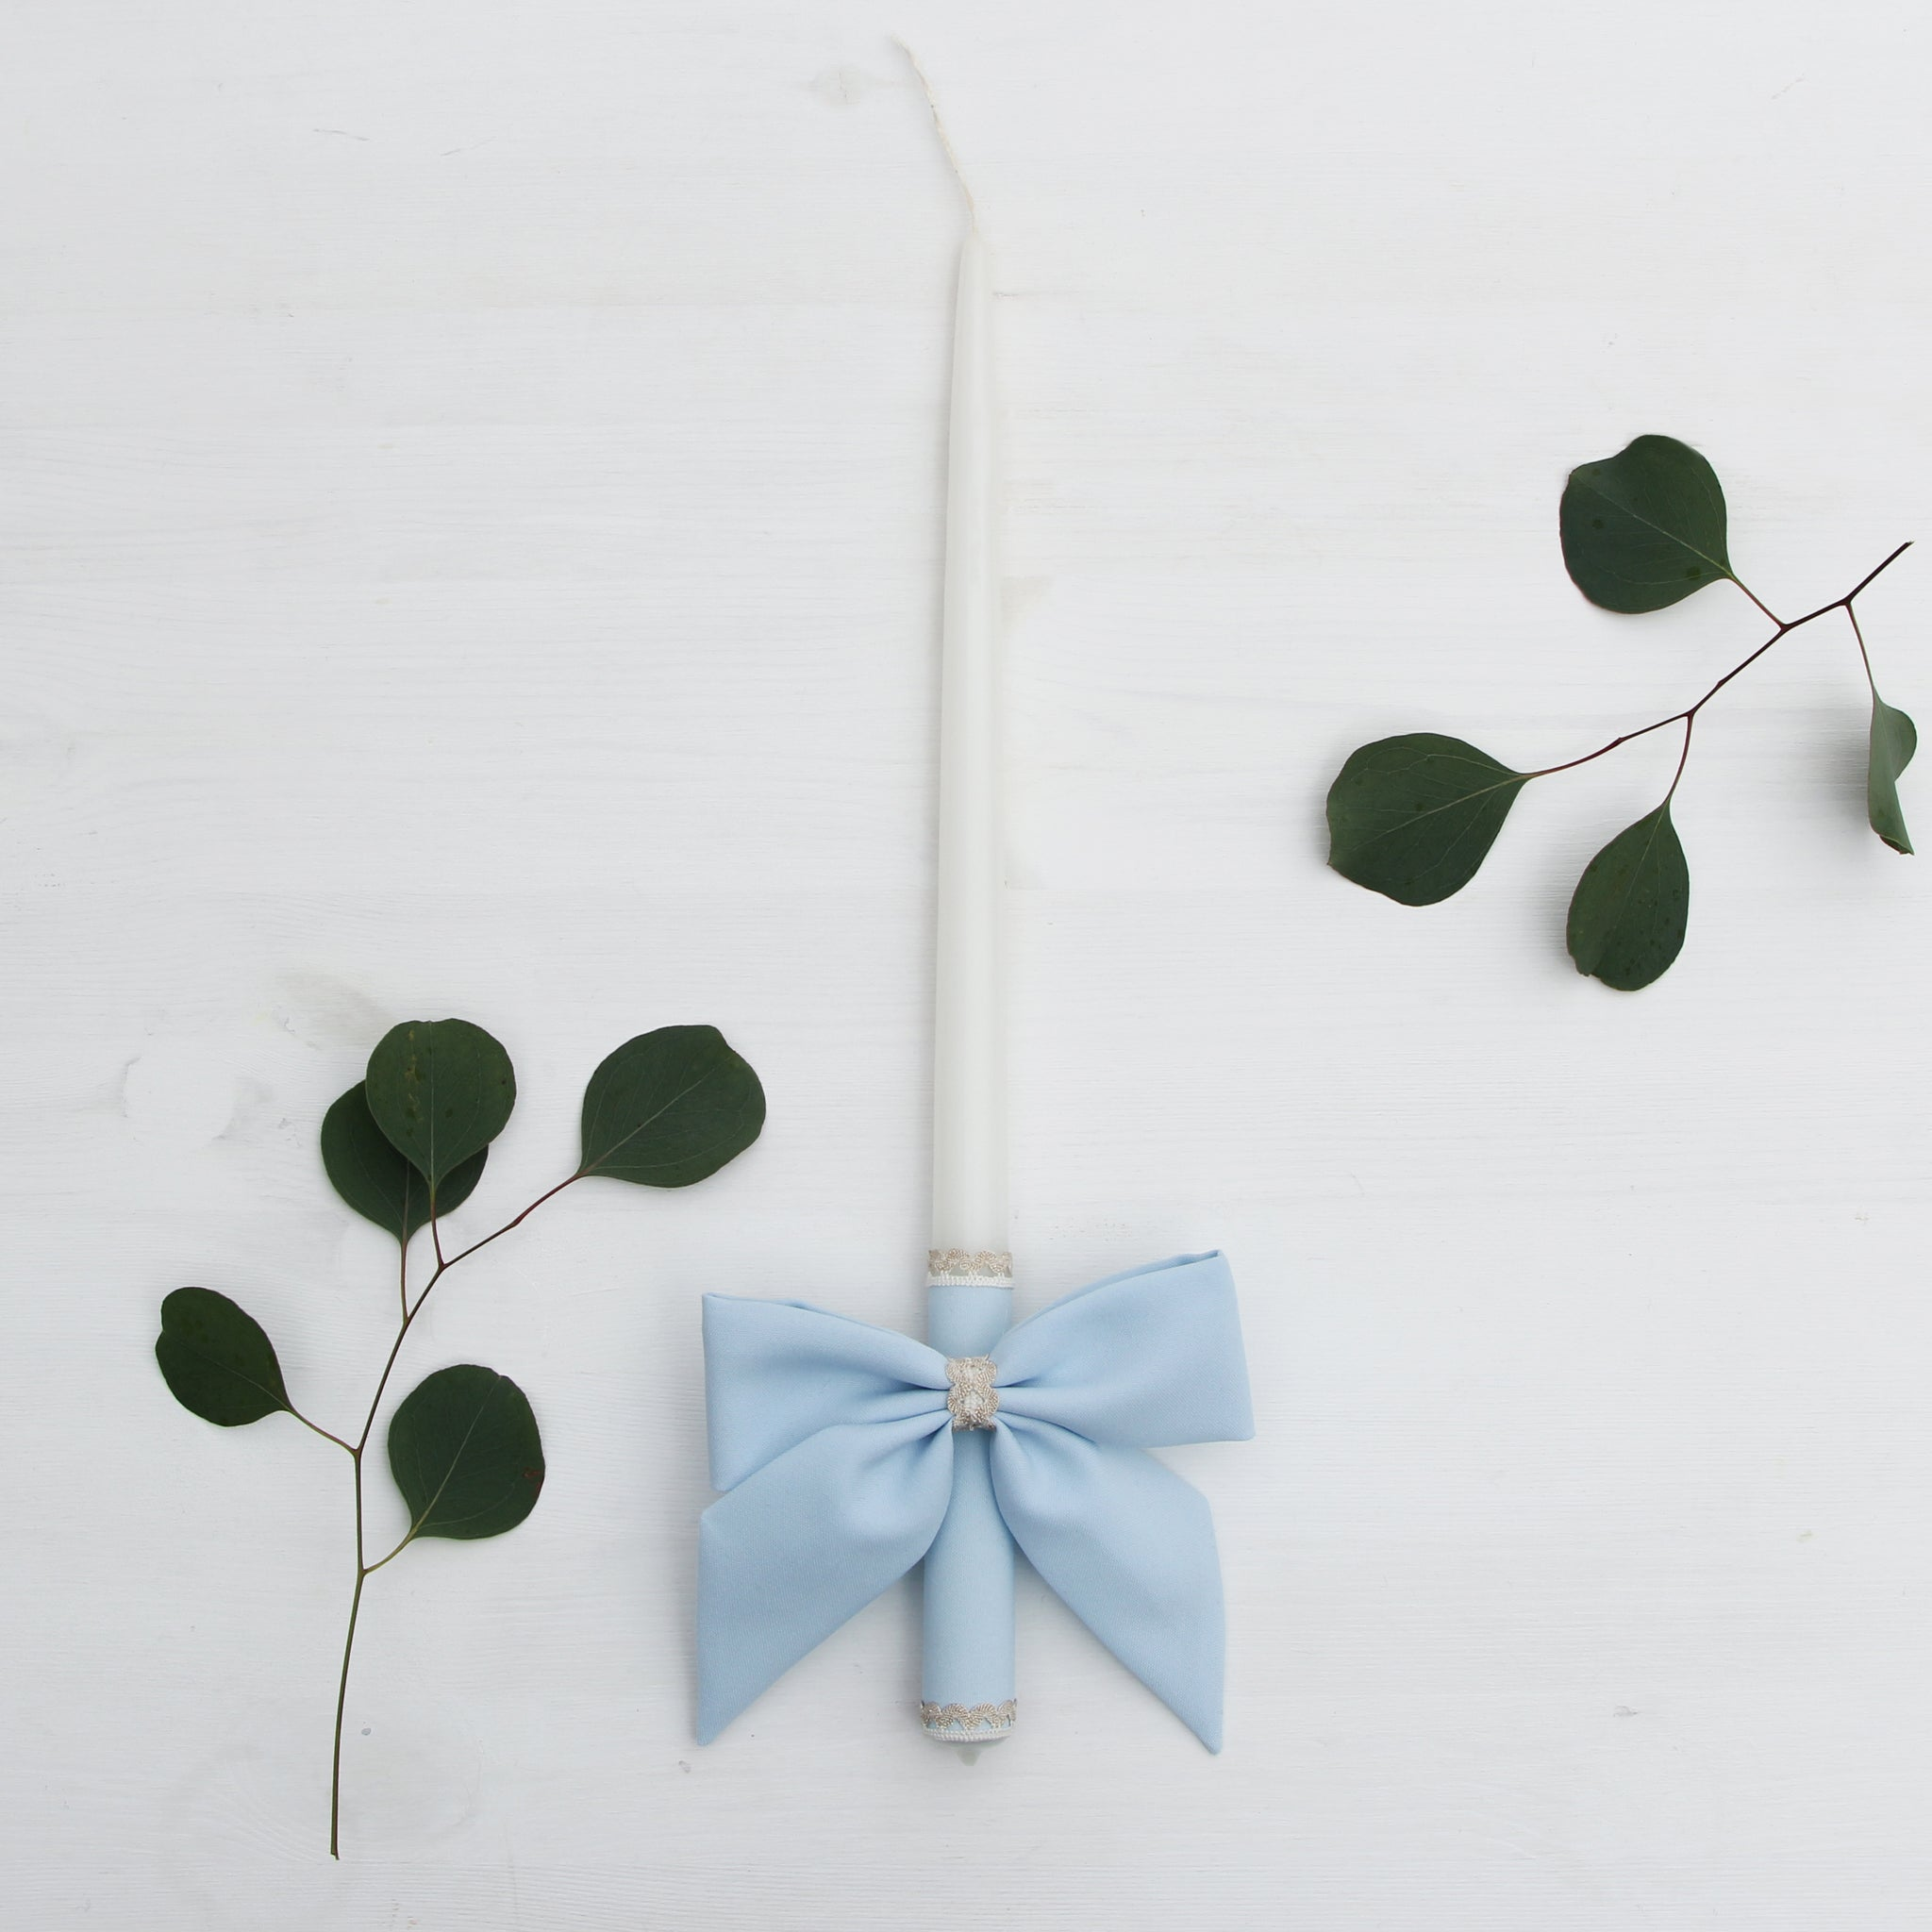 Candle Decoration Baptism Candle Deco Communion Decoration Light Blue Color, Christening Confirmation - Liumy